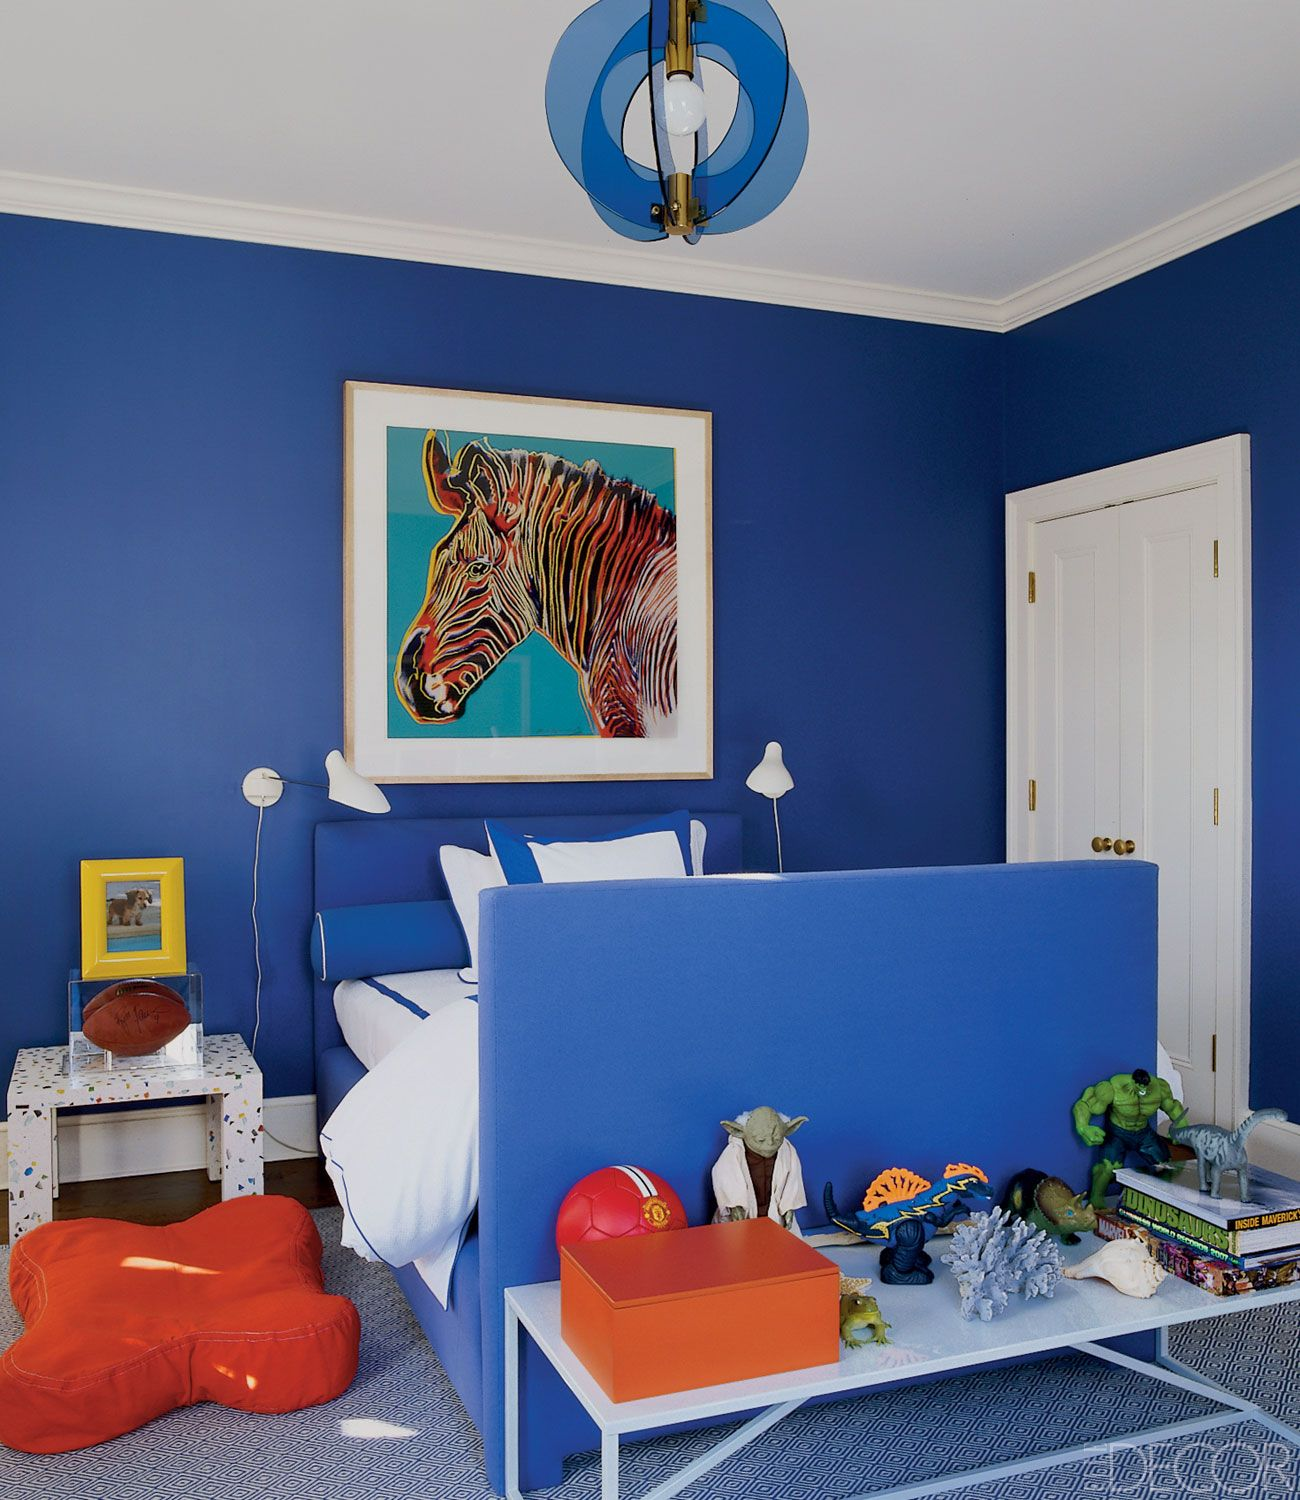 Room Ideas For Boys 15 Cool Boys Bedroom Ideas  Decorating A Little Boy Room